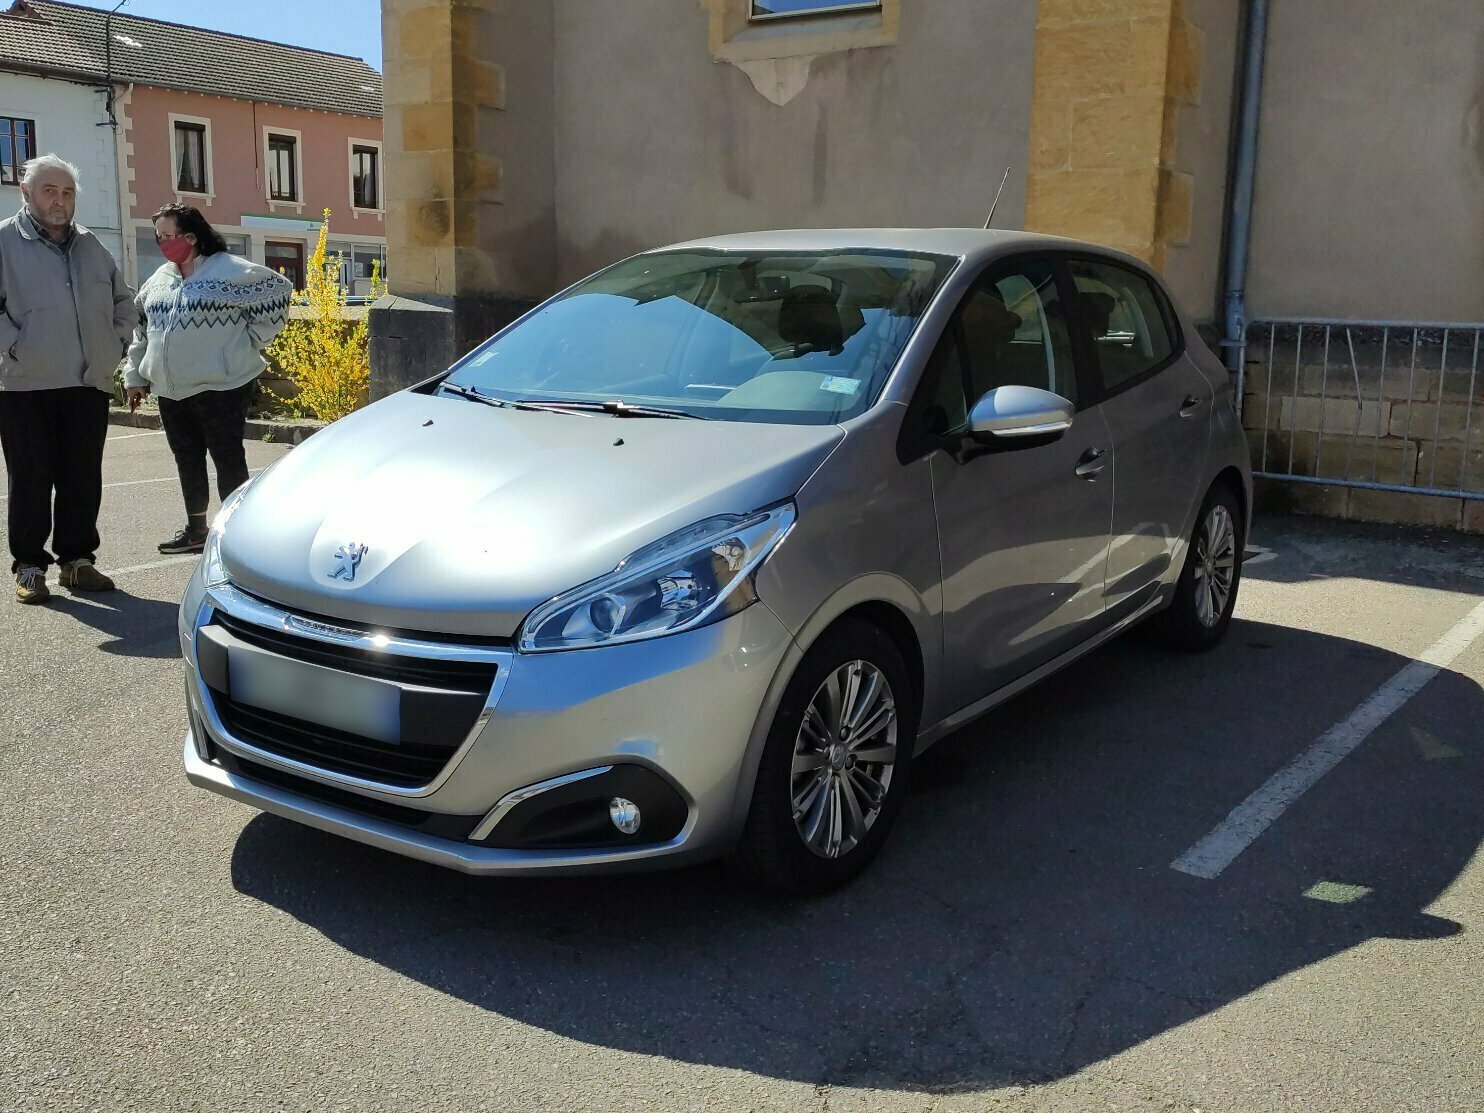 PEUGEOT 208 GENERATION-I 1.5 BLUEHDI 100 ACTIVE EU6C